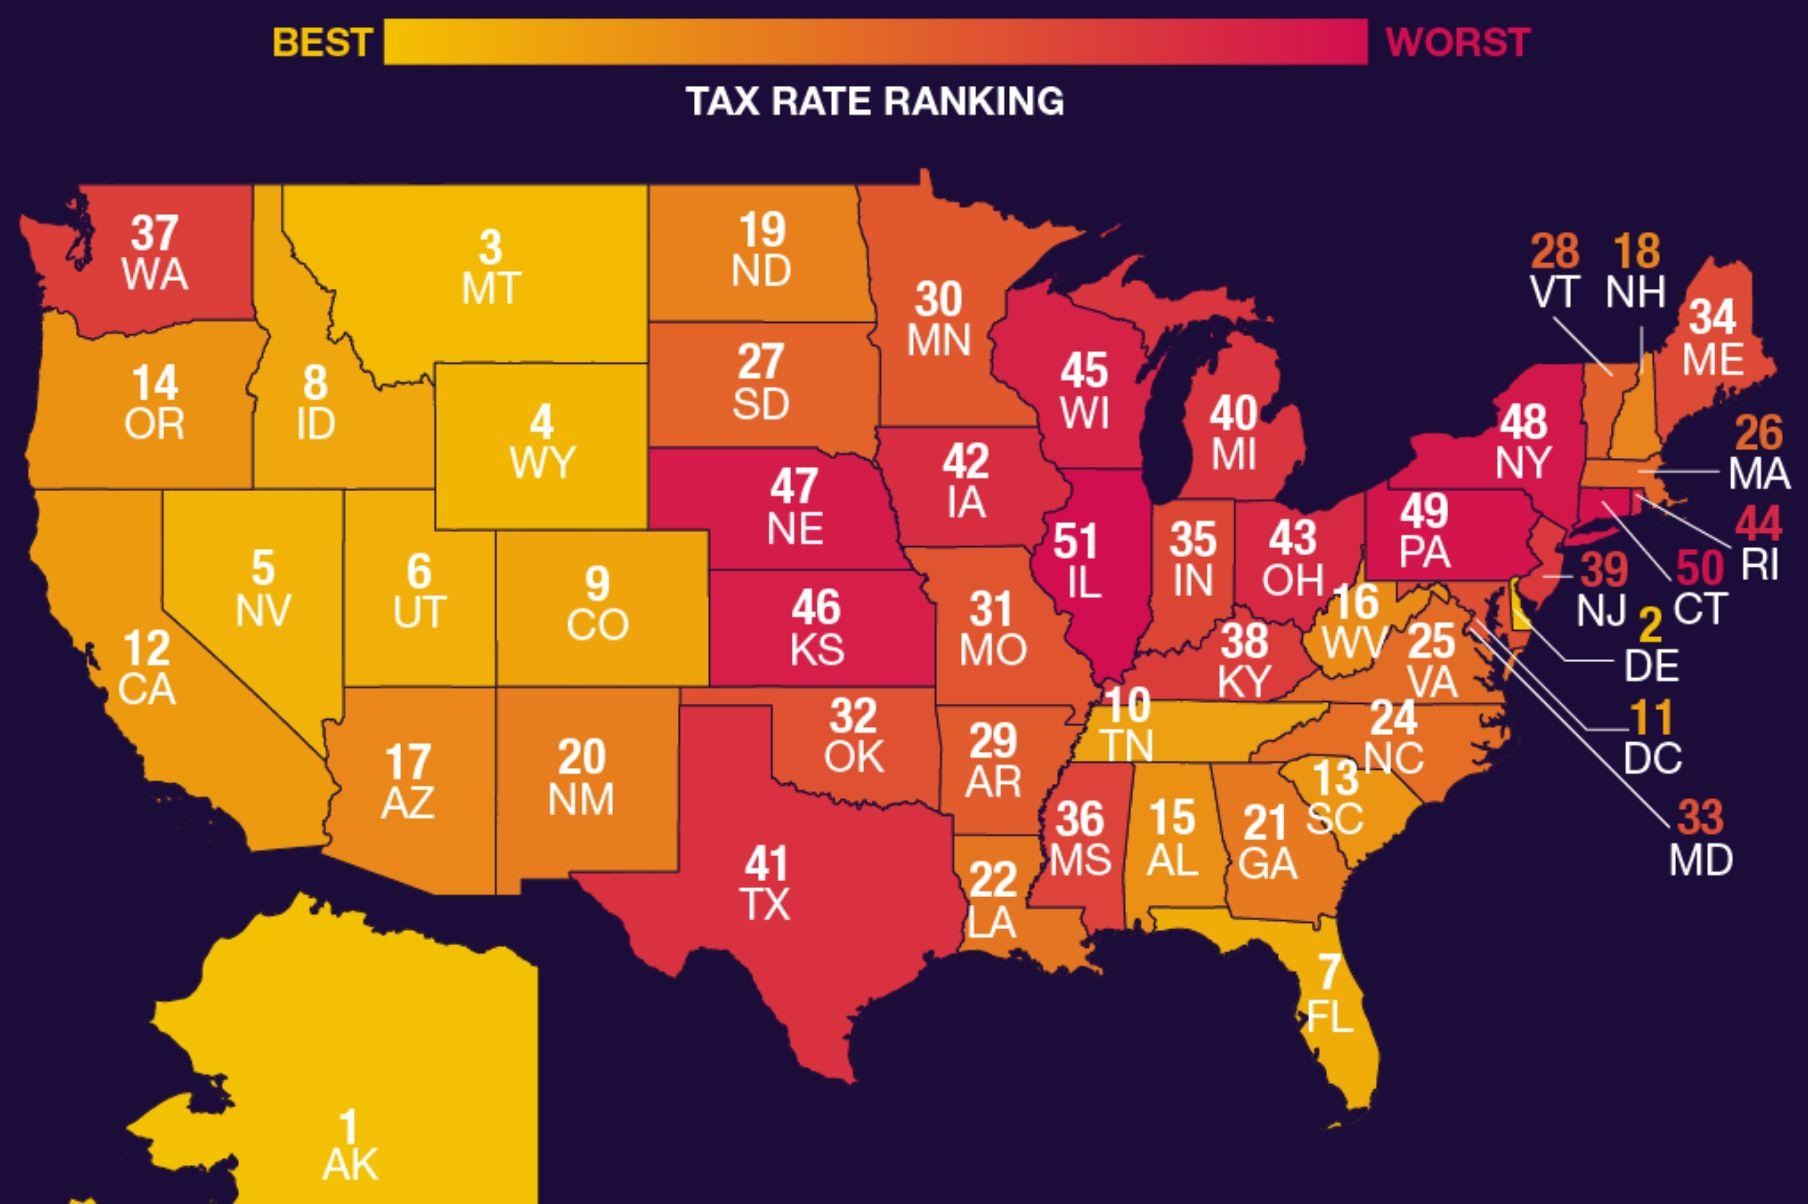 The best and worst U.S. states for taxpayers